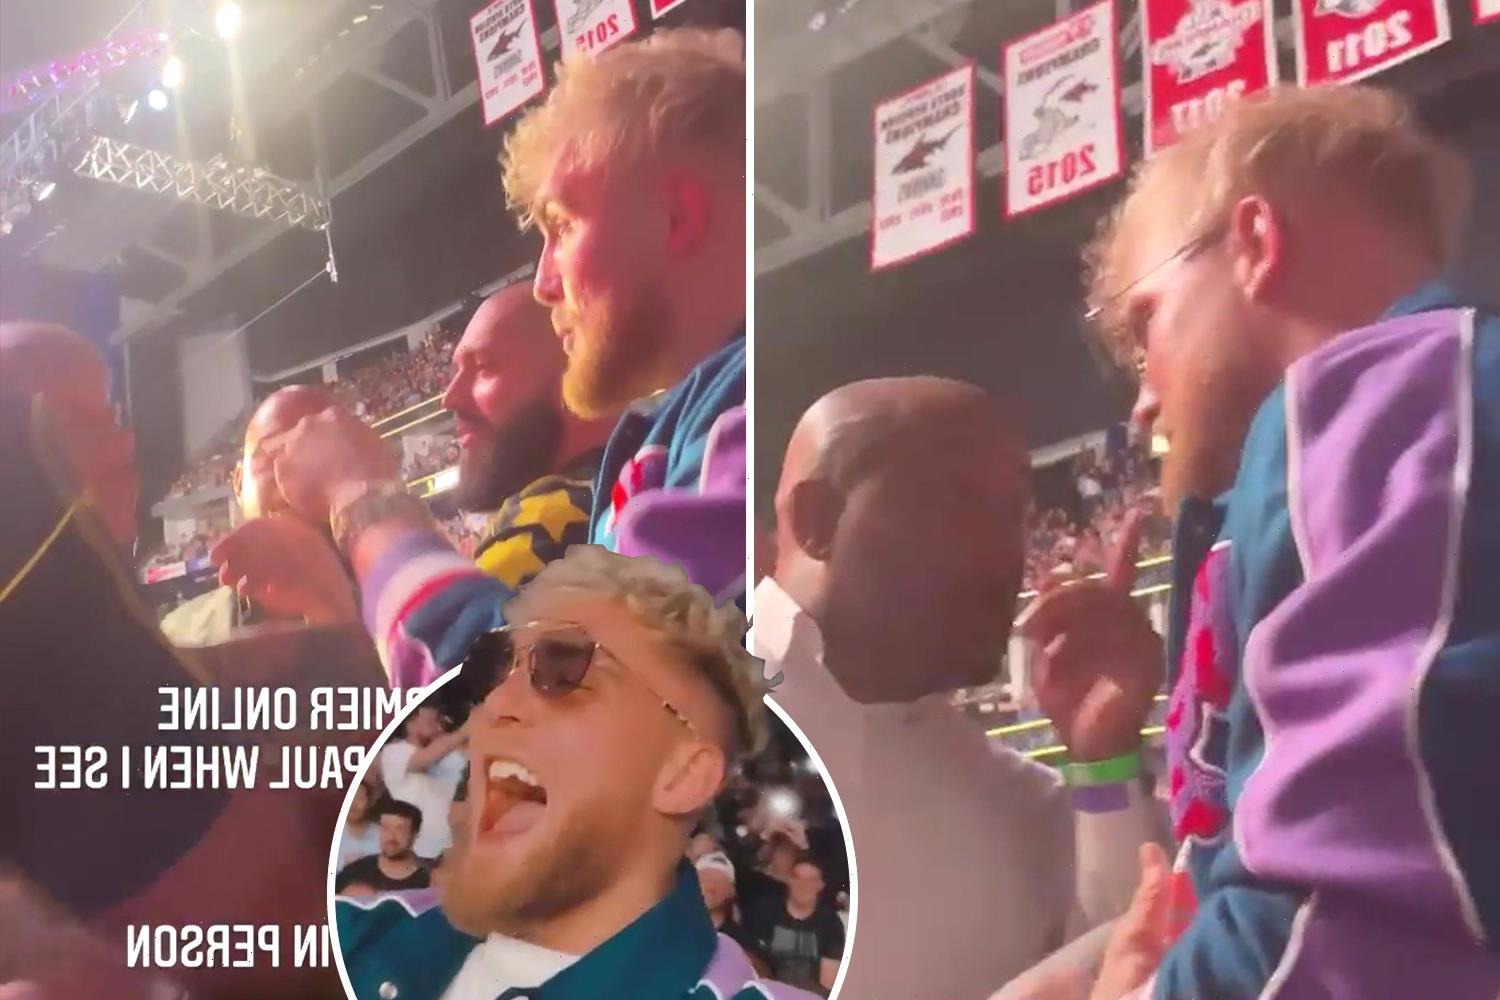 Watch Jake Paul square up to Daniel Cormier at UFC 261 and give entire crowd middle finger in response to X-rated chant